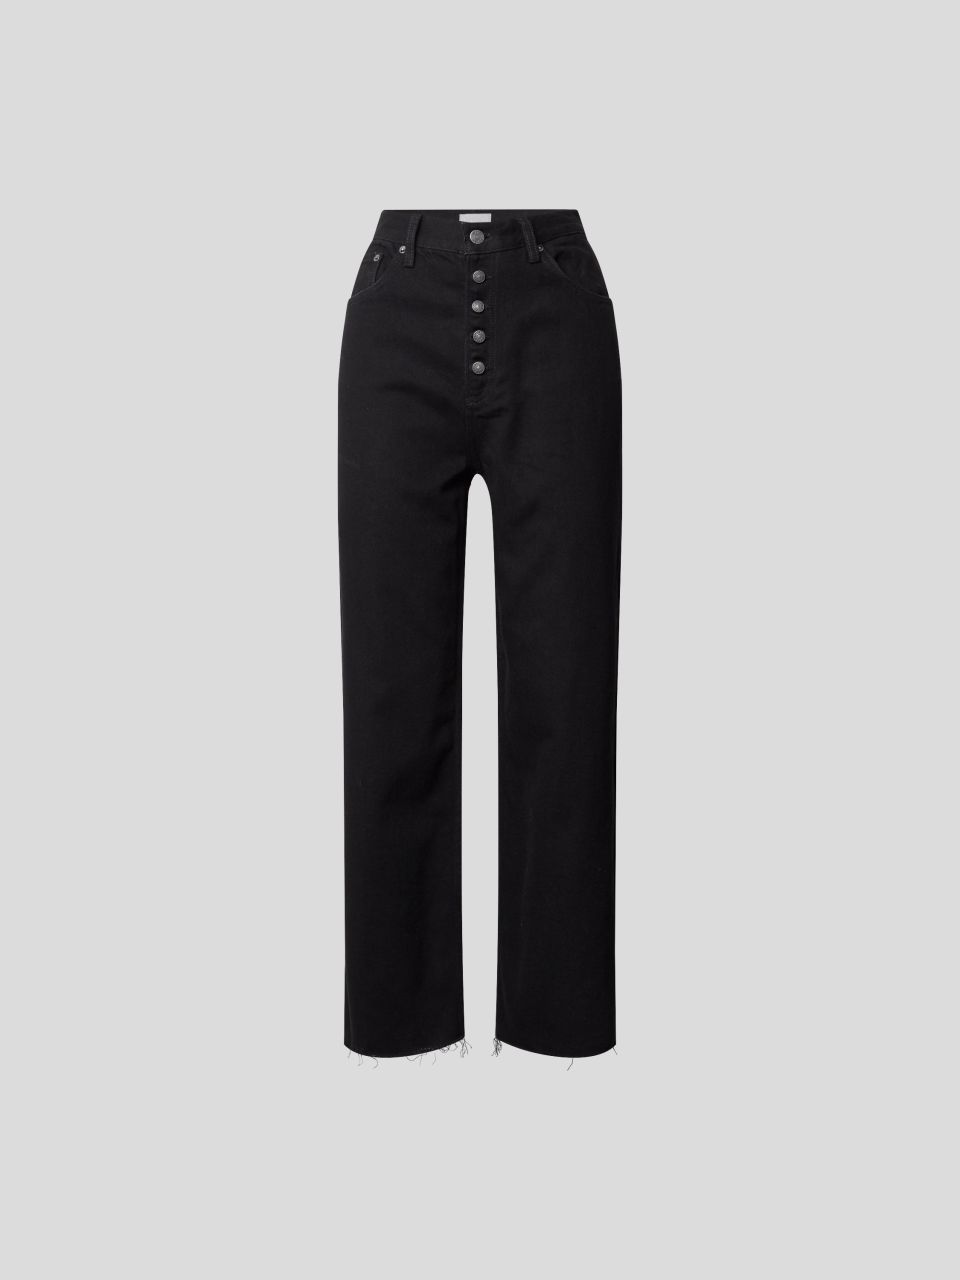 High Waist Relaxed Fit Jeans